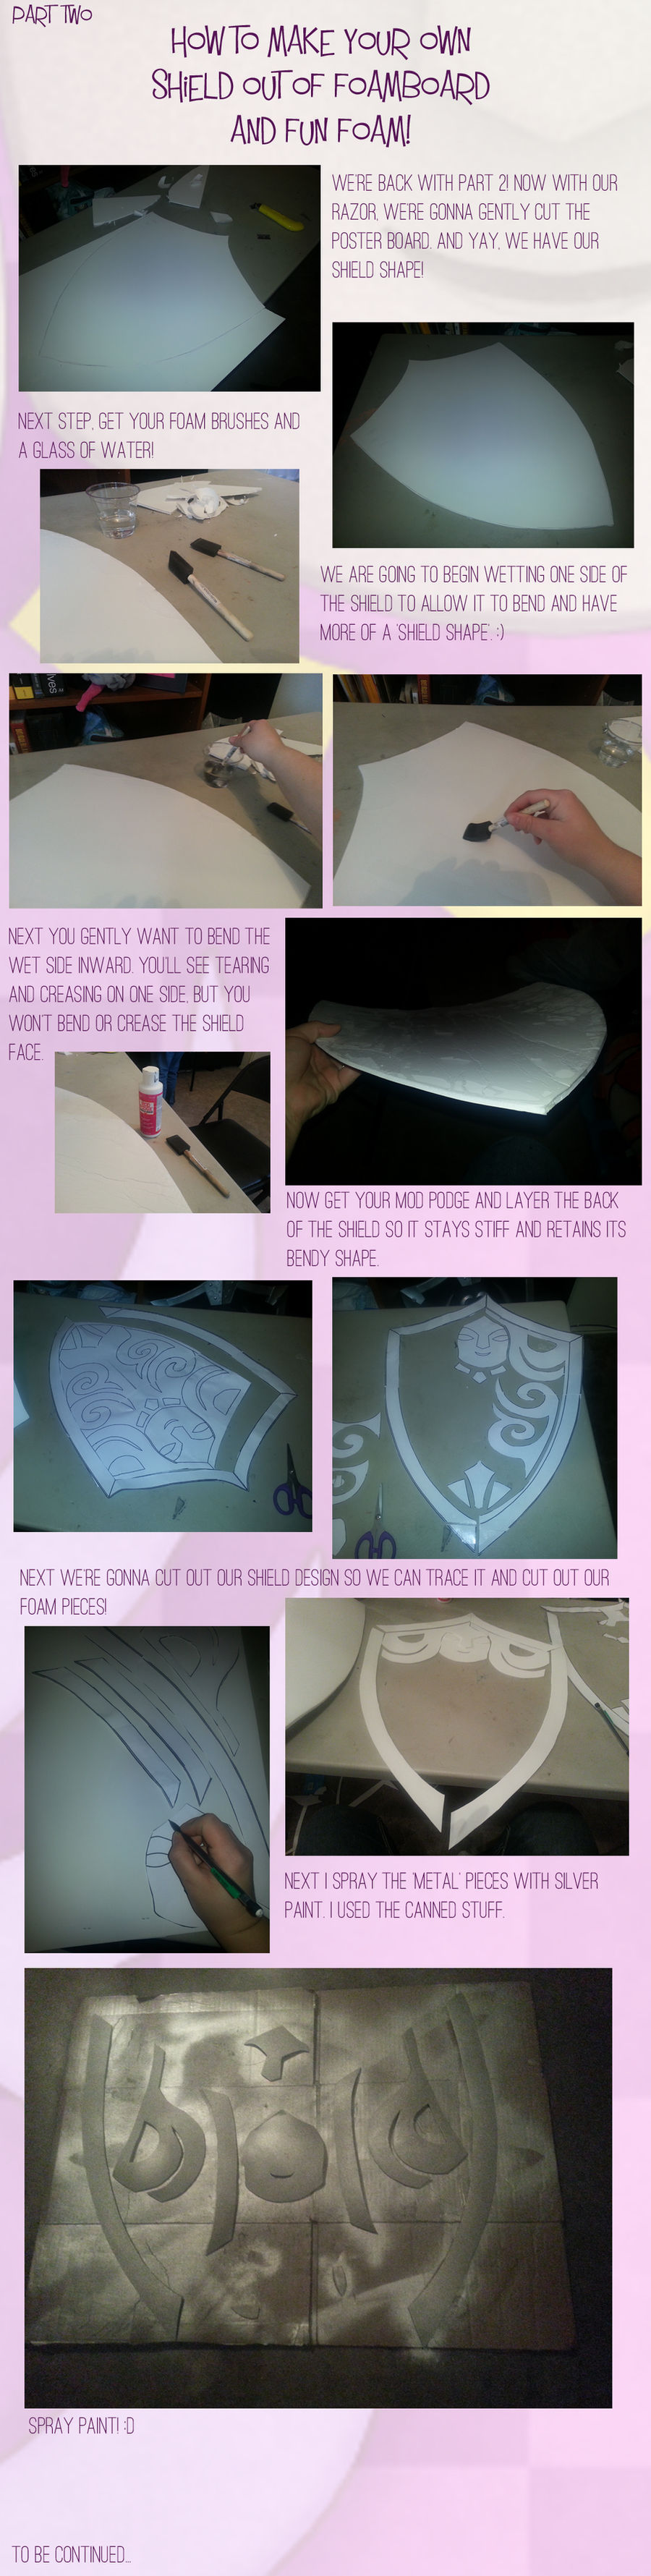 How to make your own shield - Part 2